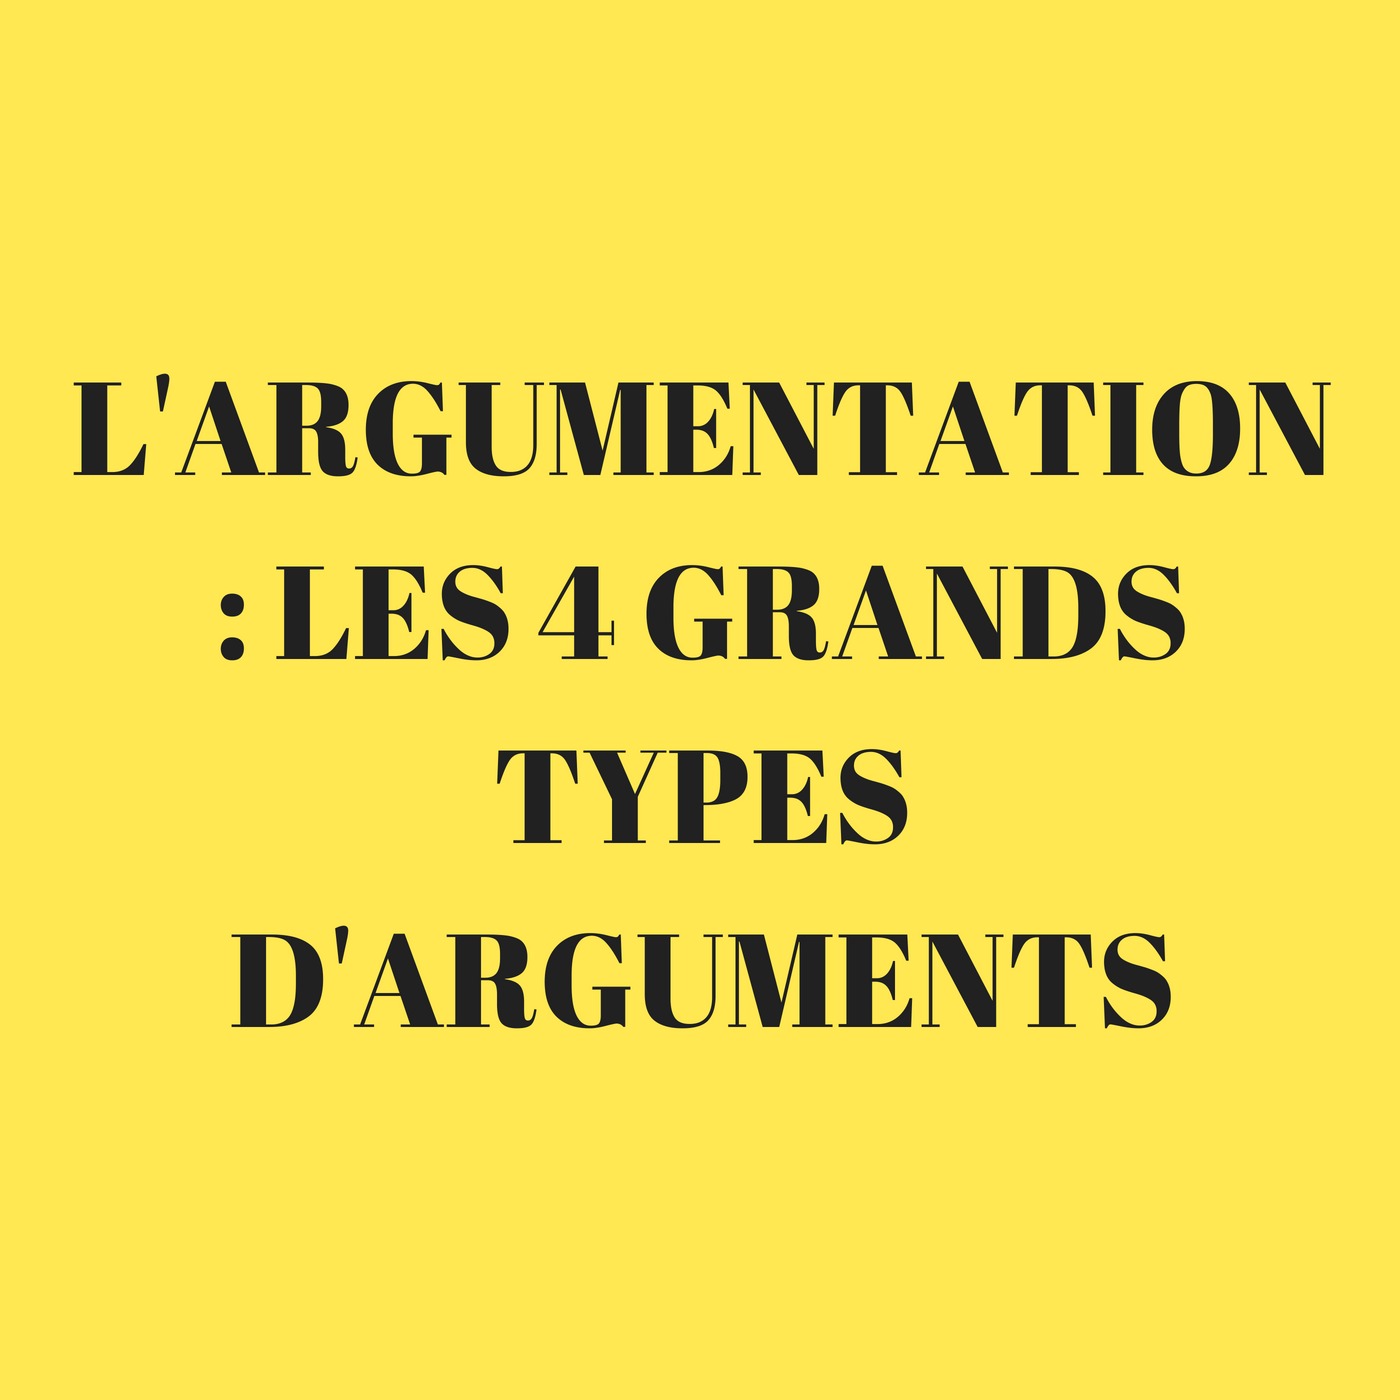 L'argumentation : les 4 grands types d'arguments